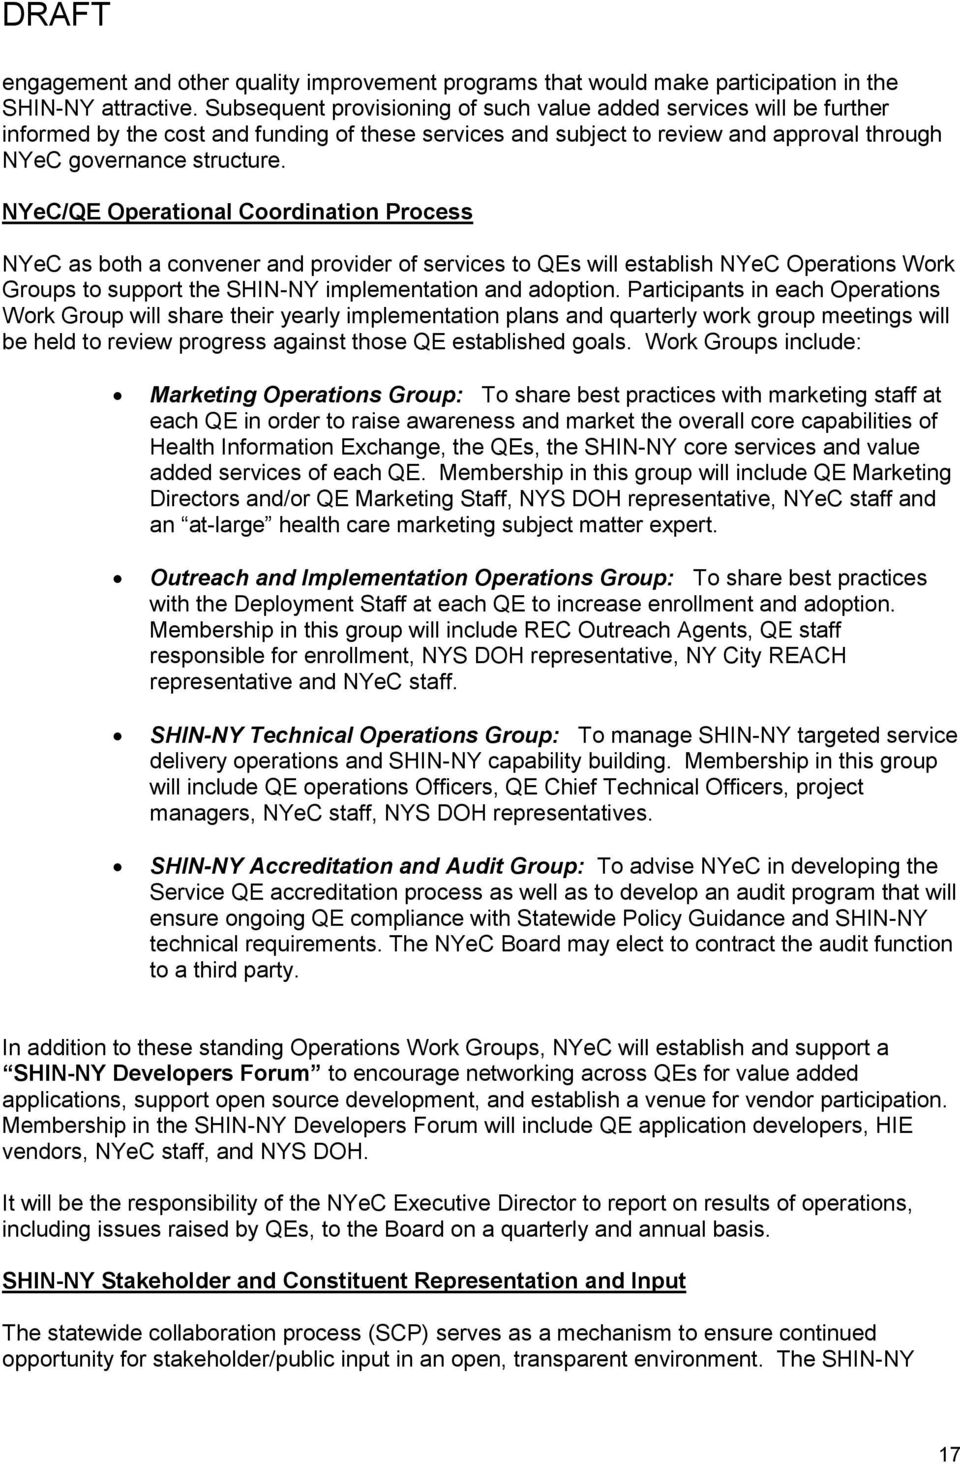 NYeC/QE Operational Coordination Process NYeC as both a convener and provider of services to QEs will establish NYeC Operations Work Groups to support the SHIN-NY implementation and adoption.